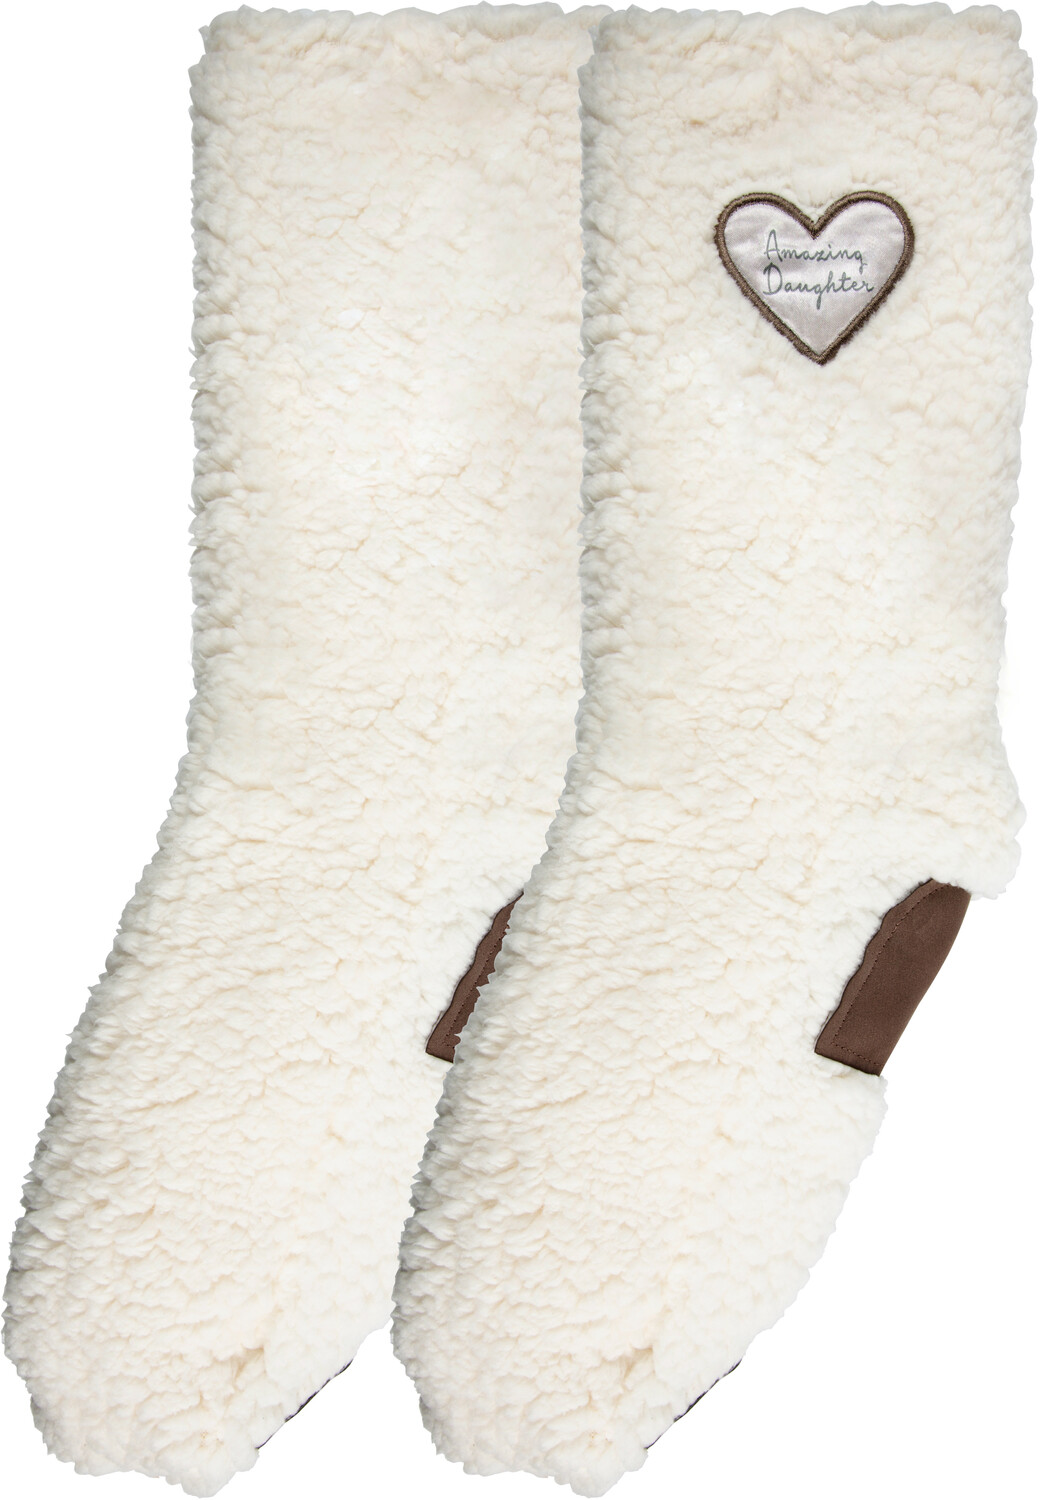 Amazing Daughter by Comfort Collection - Amazing Daughter - One Size Fits Most Sherpa Slipper